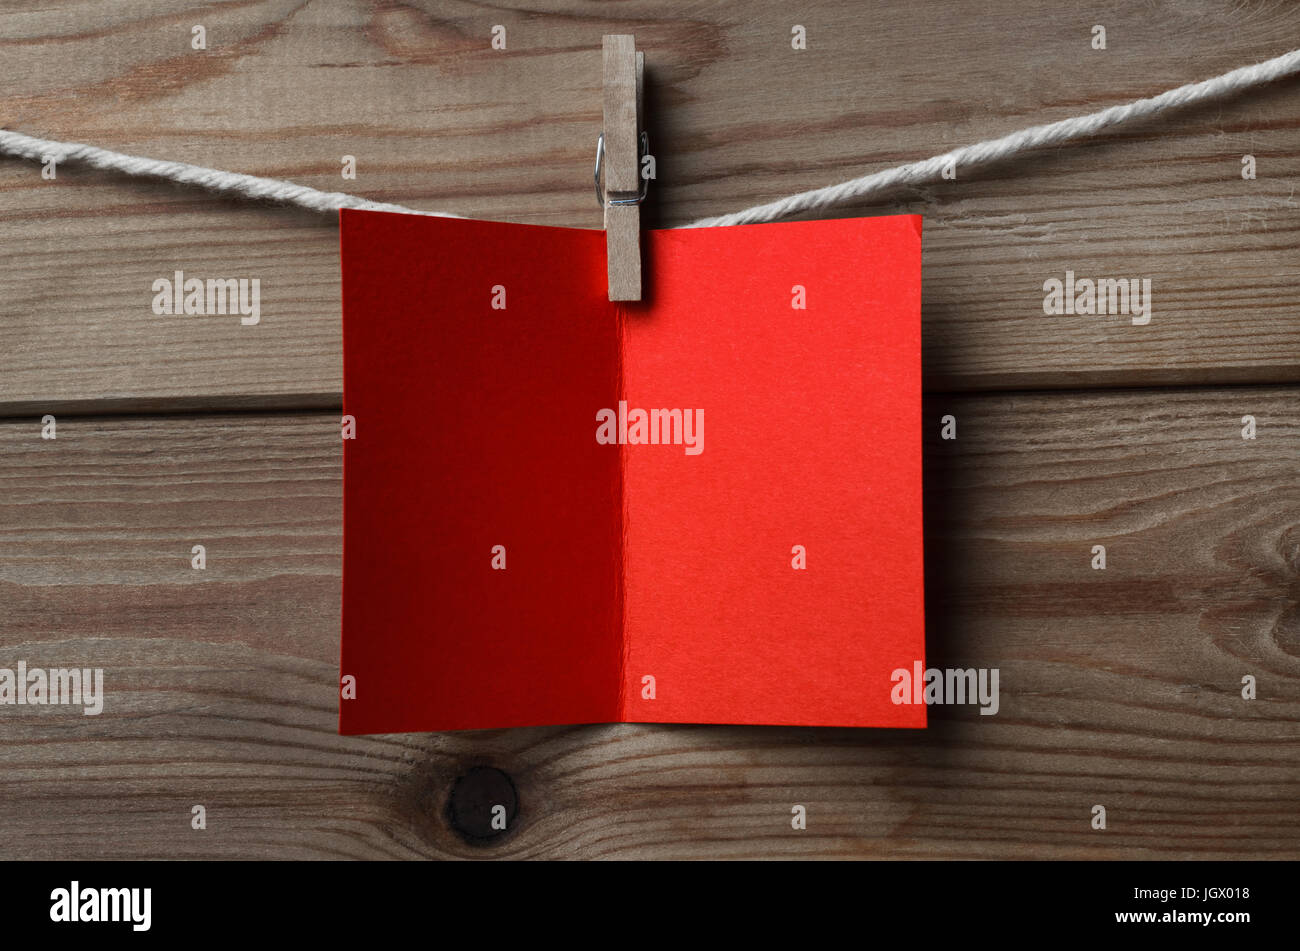 An opened, blank red greeting or Christmas card, pegged on to string against wood plank background - Stock Image